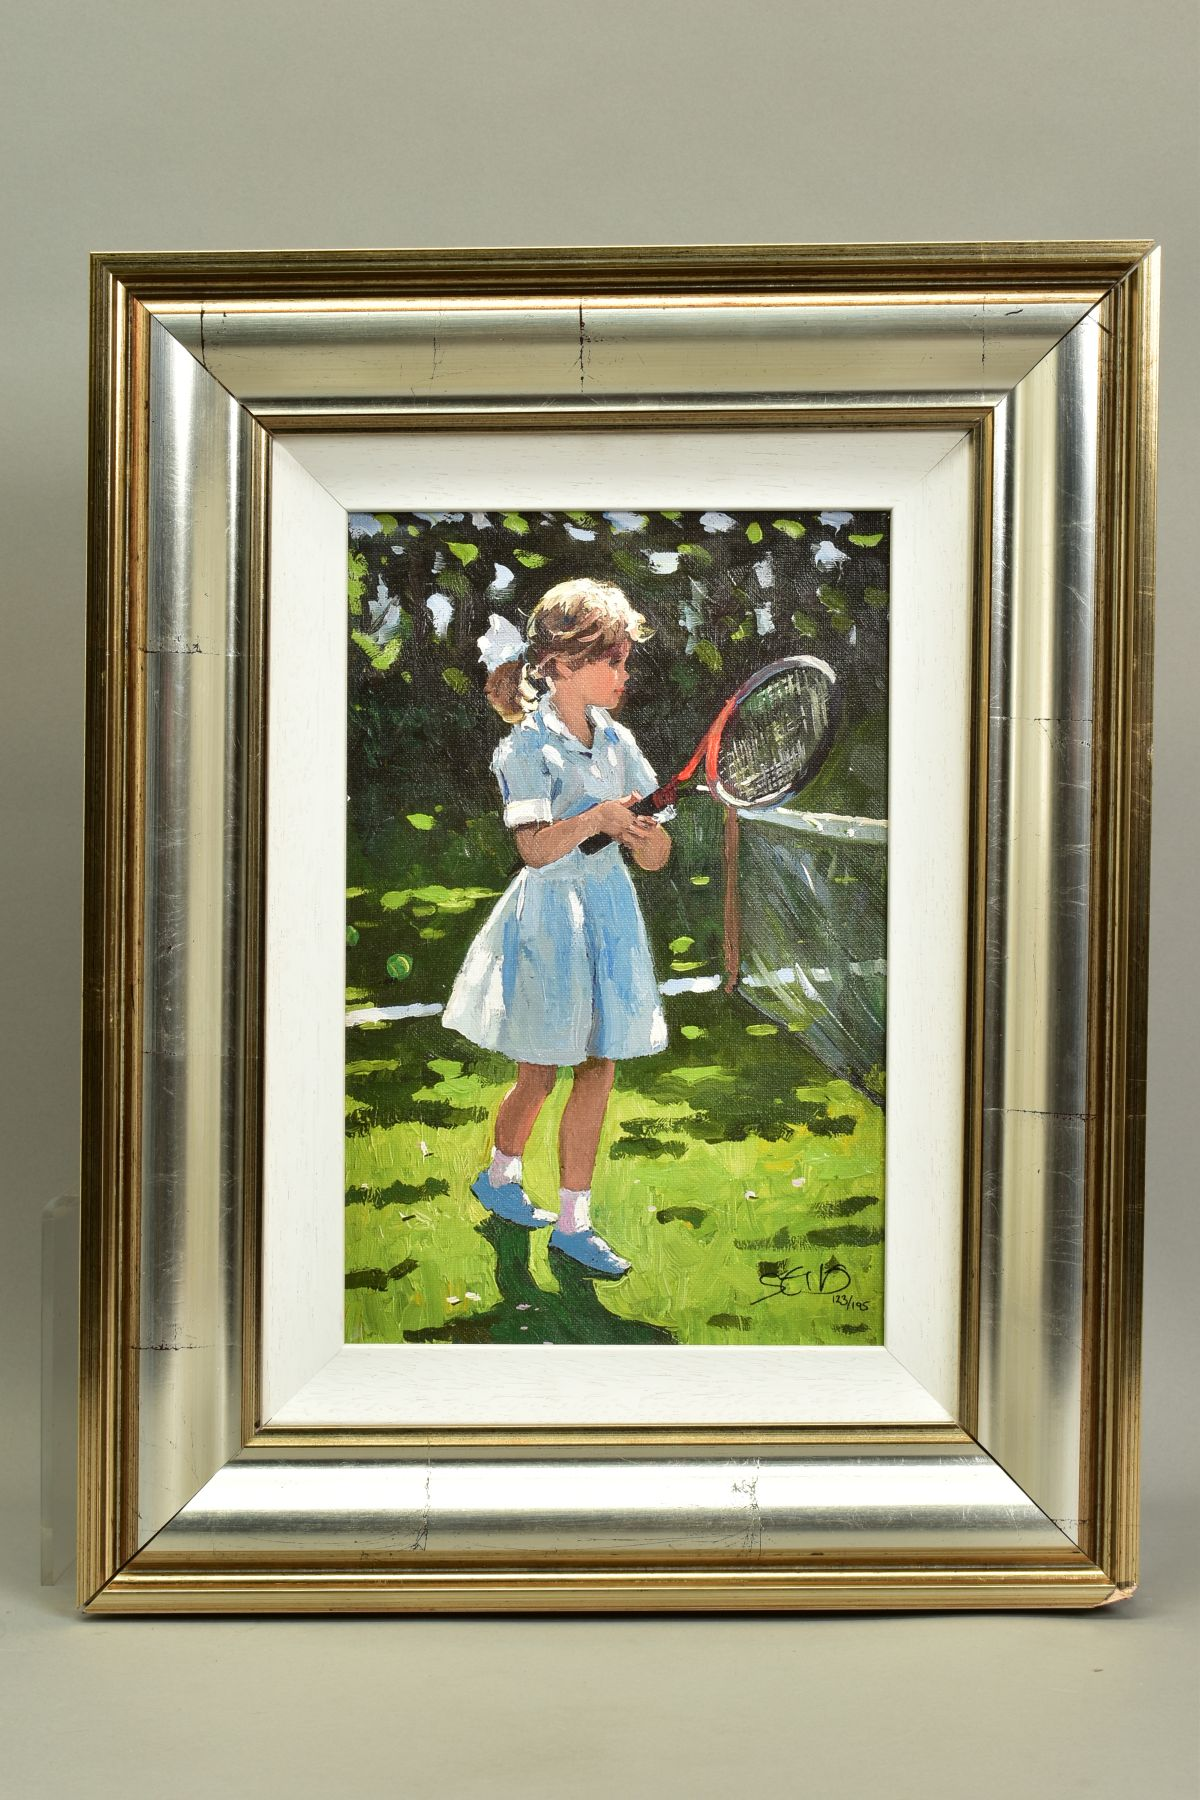 SHERREE VALENTINE DAINES (BRITISH 1959), 'Playful Times I', a Limited Edition print of a young